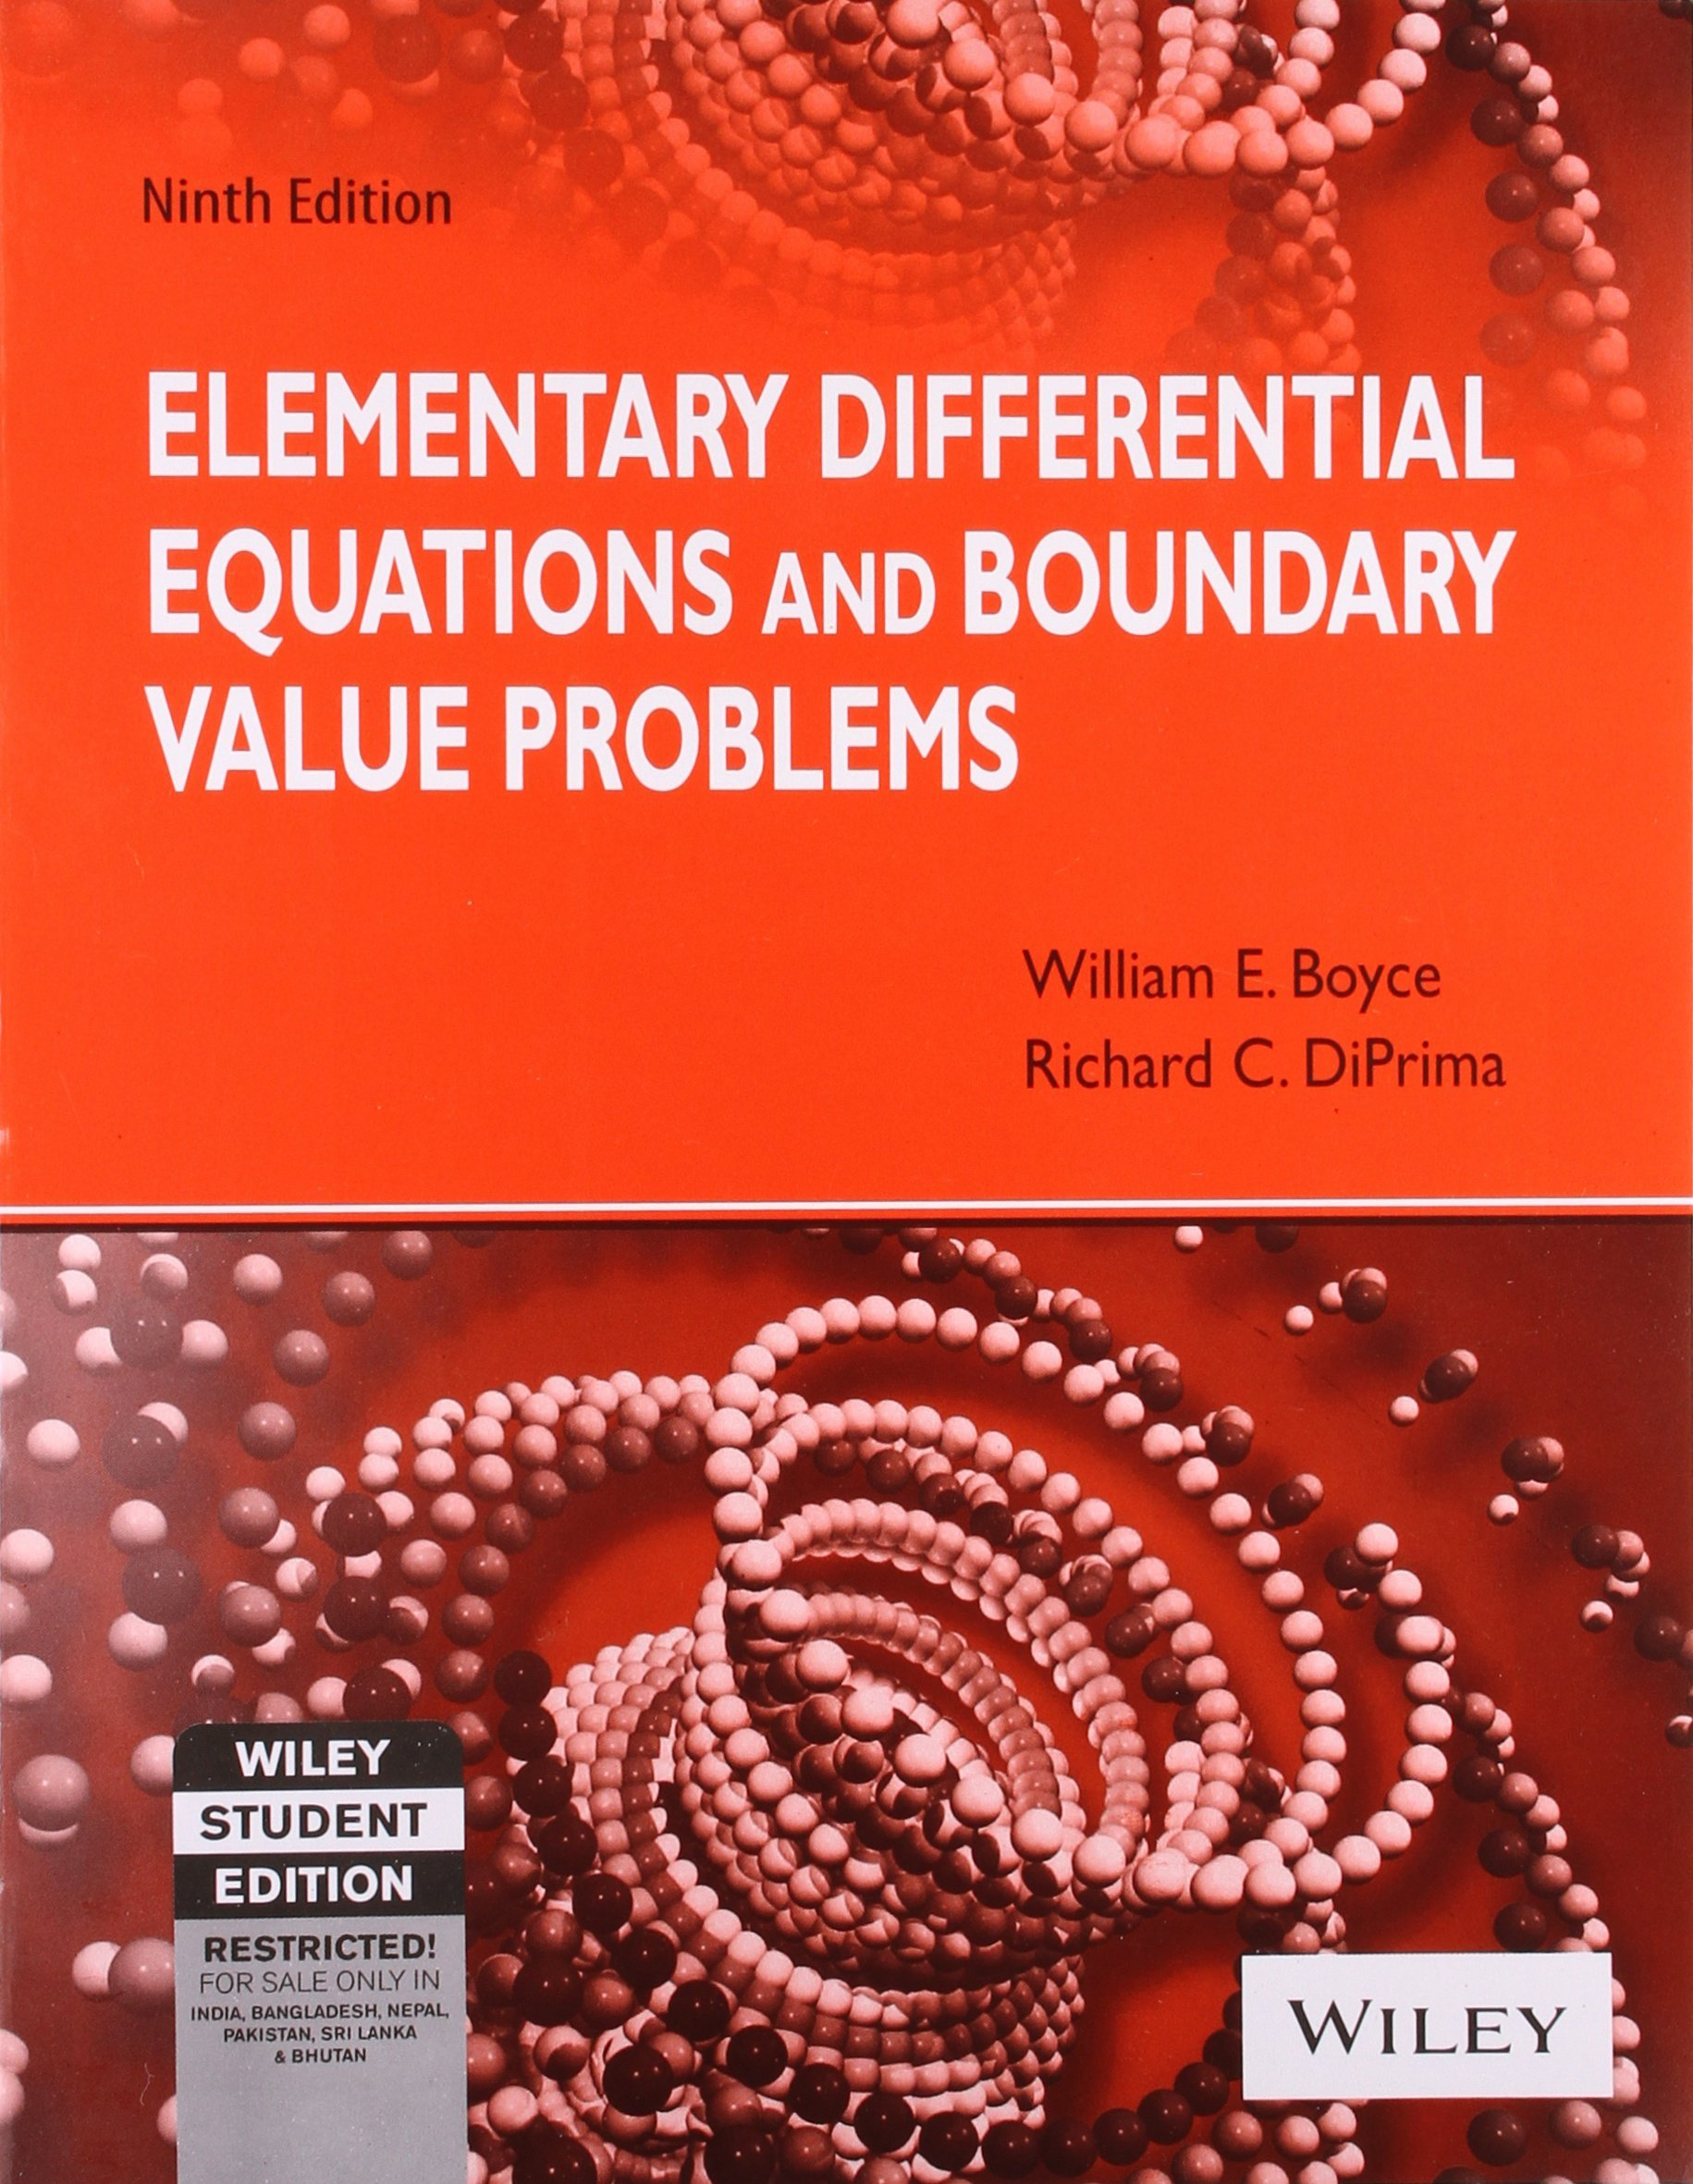 Elementary Differential Equations and Boundry Value Problems: Richard C.  Diprima William E. Boyce: 9780470735862: Amazon.com: Books